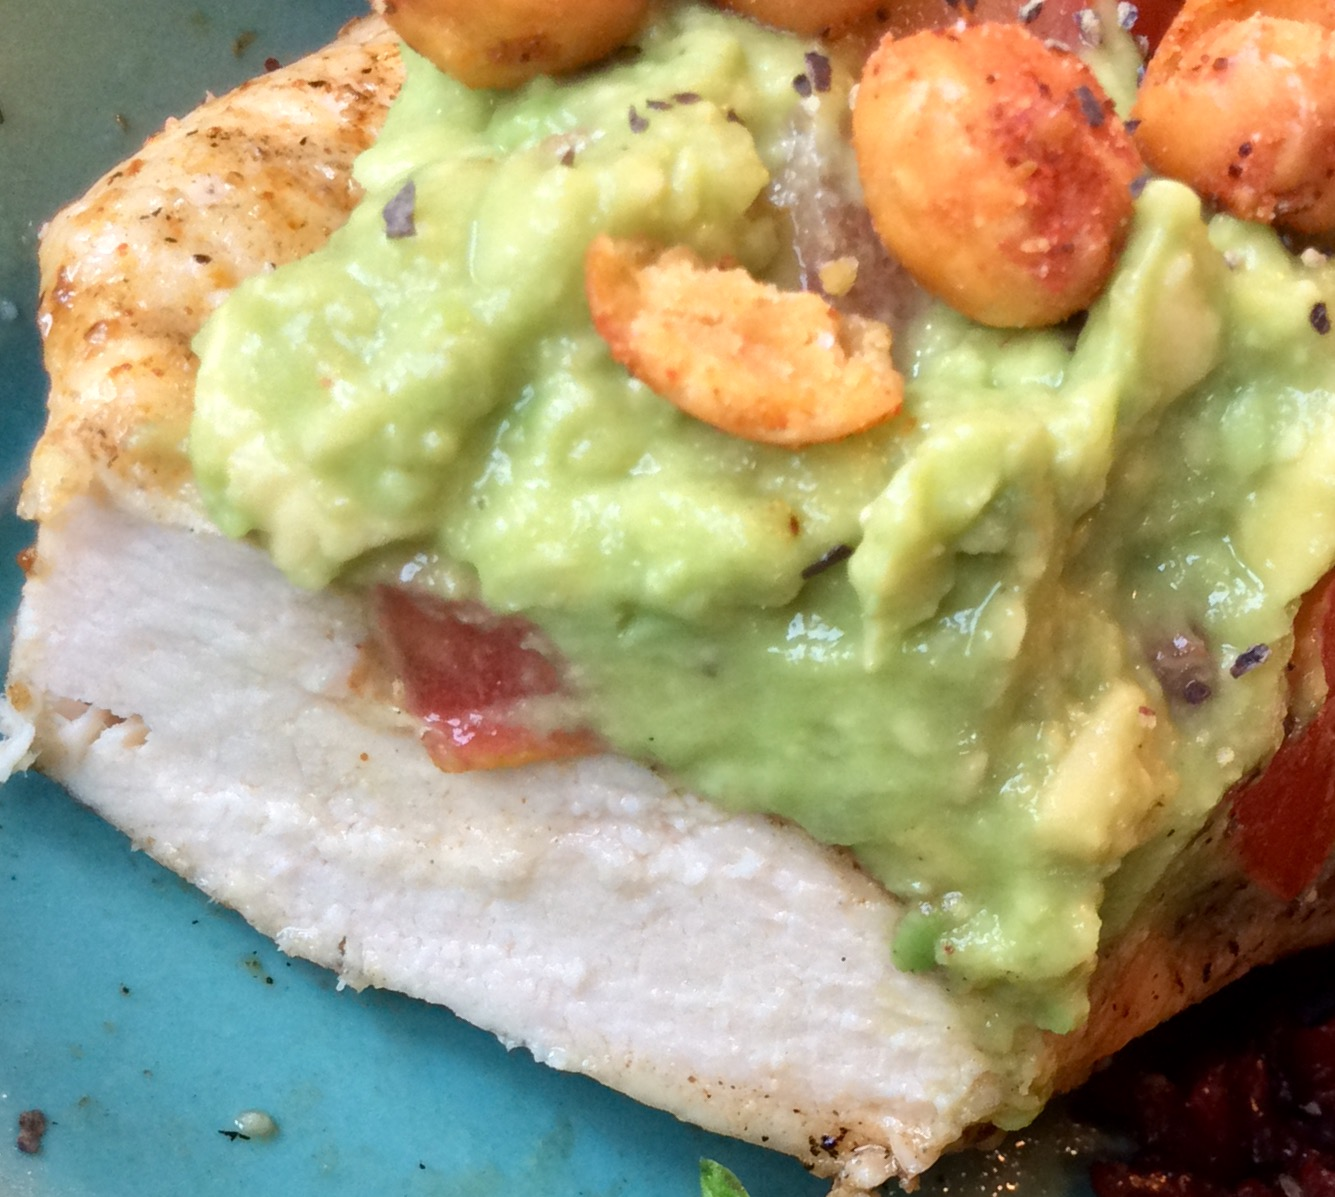 Food Fitness by Paige: Guacamole Grilled Habanero Chicken